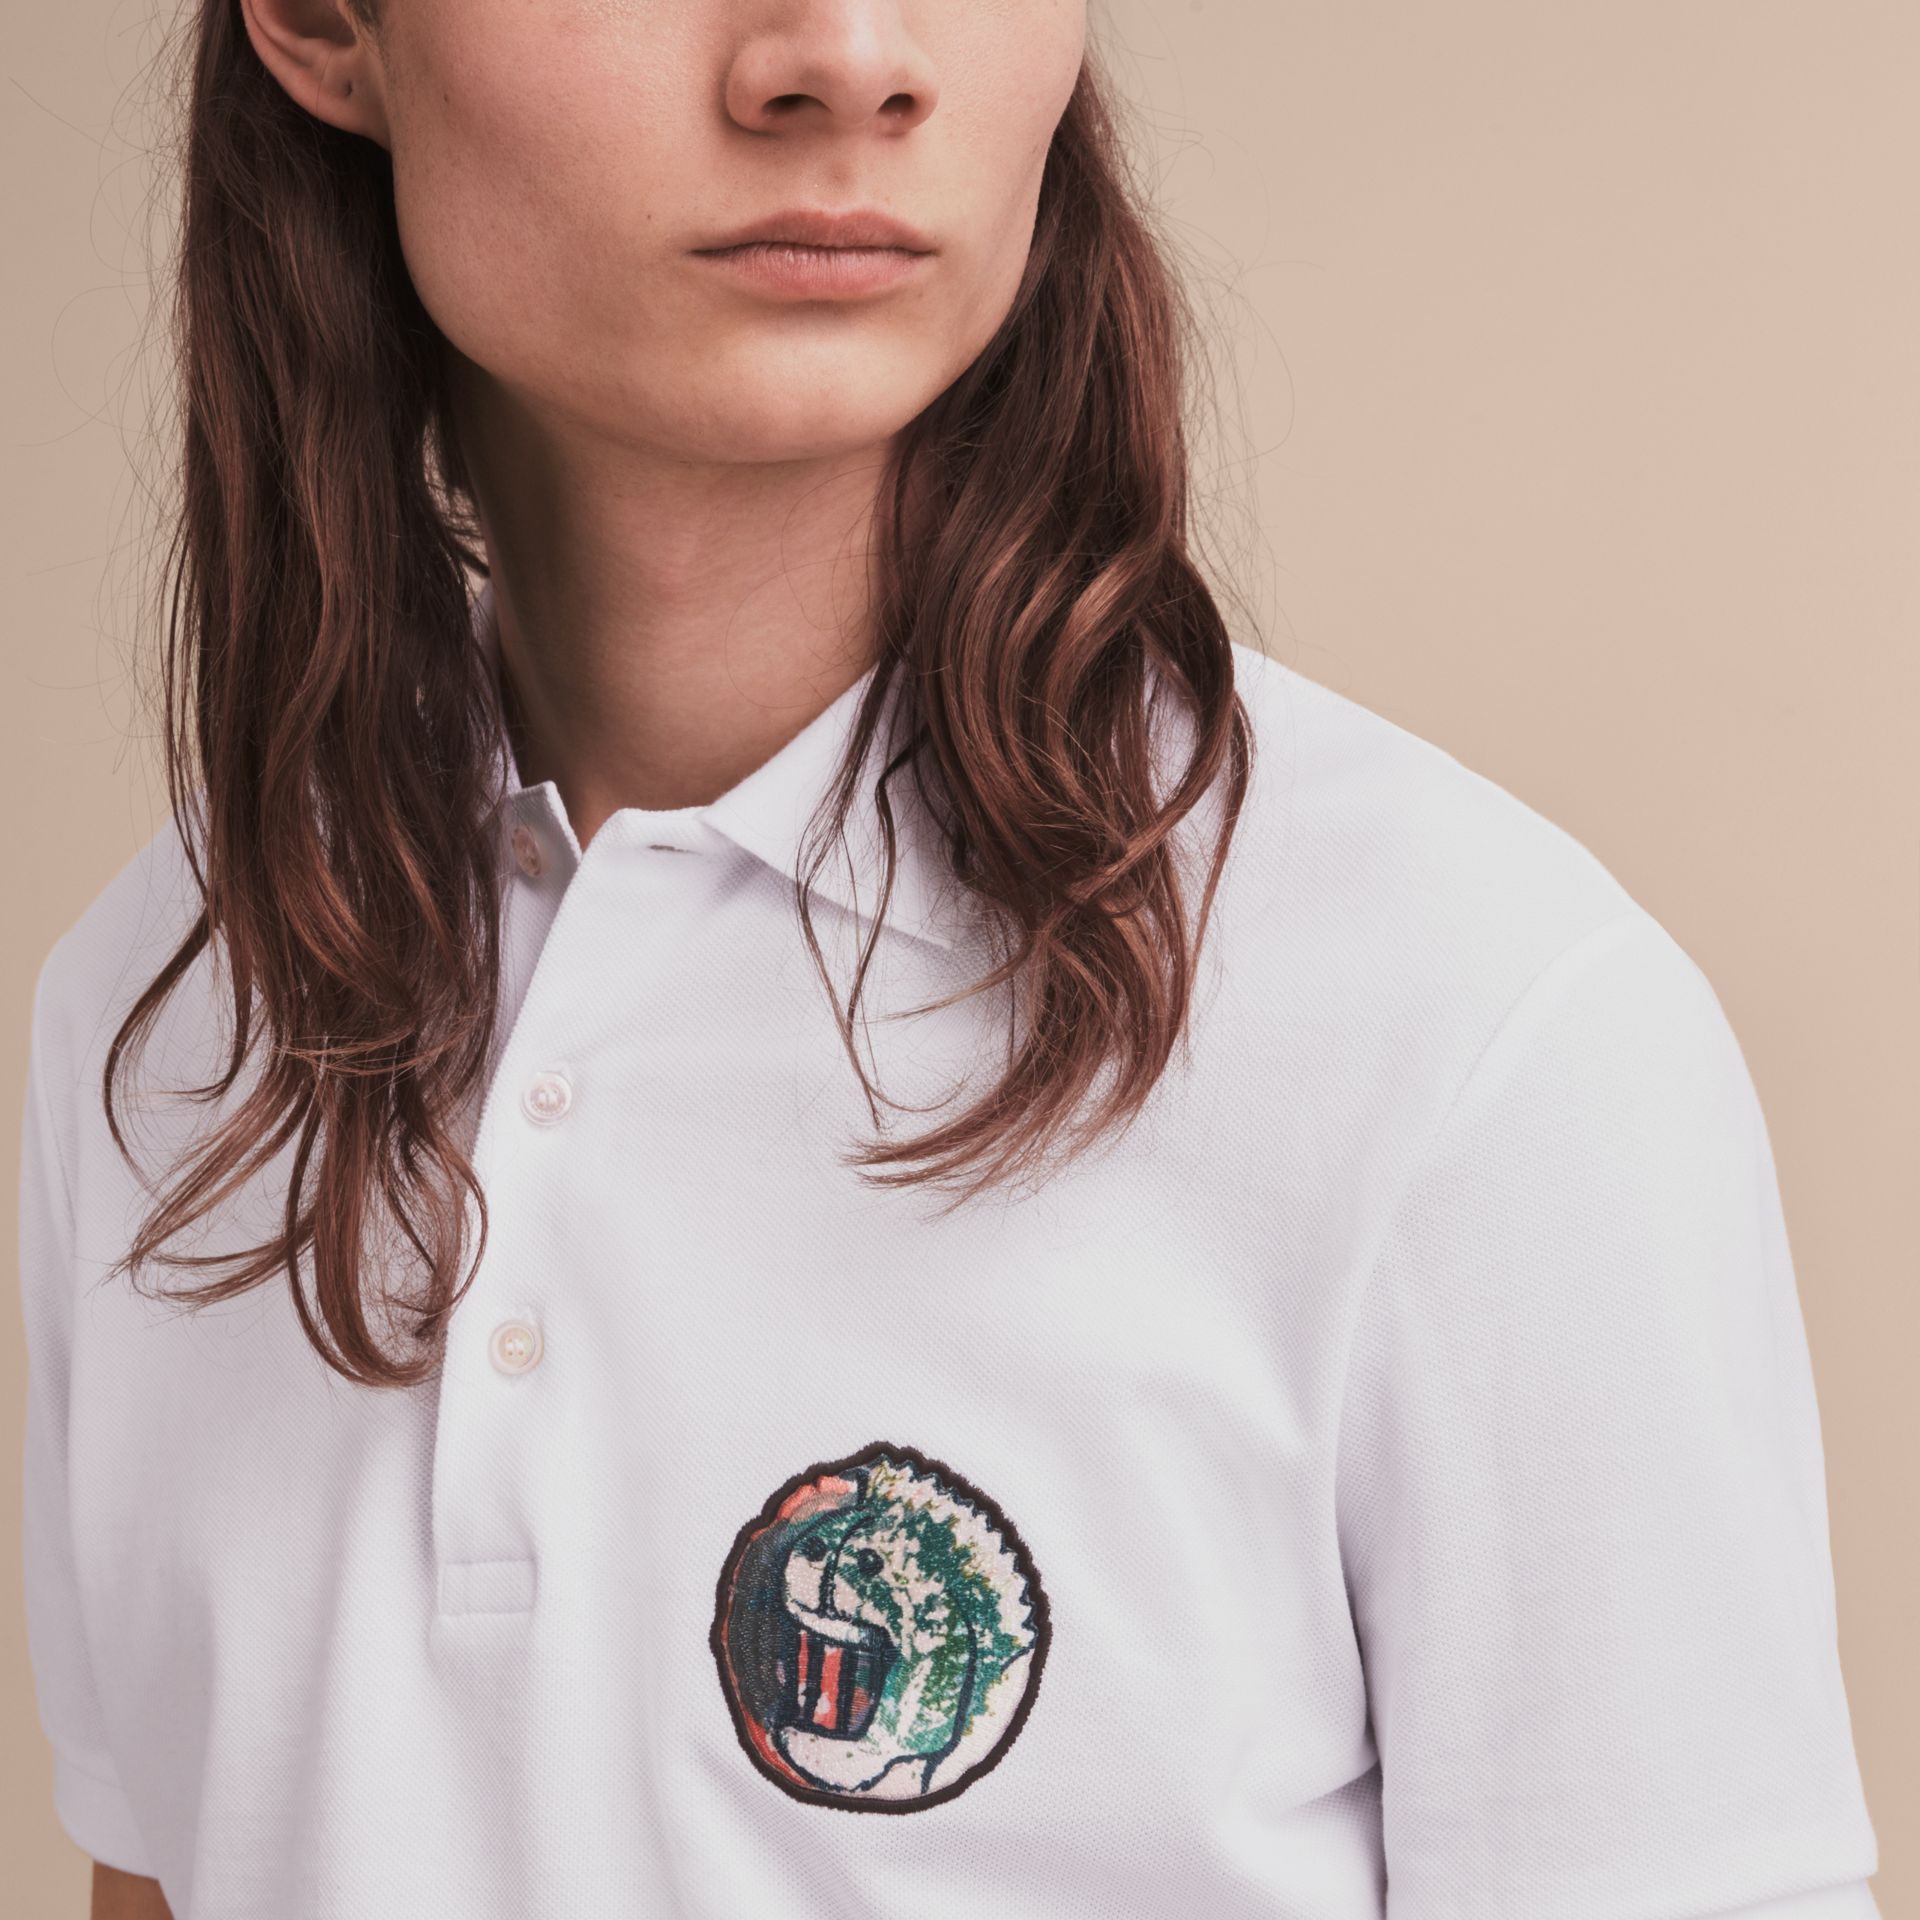 Pallas Heads Appliqué Cotton Polo Shirt in White - Men | Burberry Australia - gallery image 5